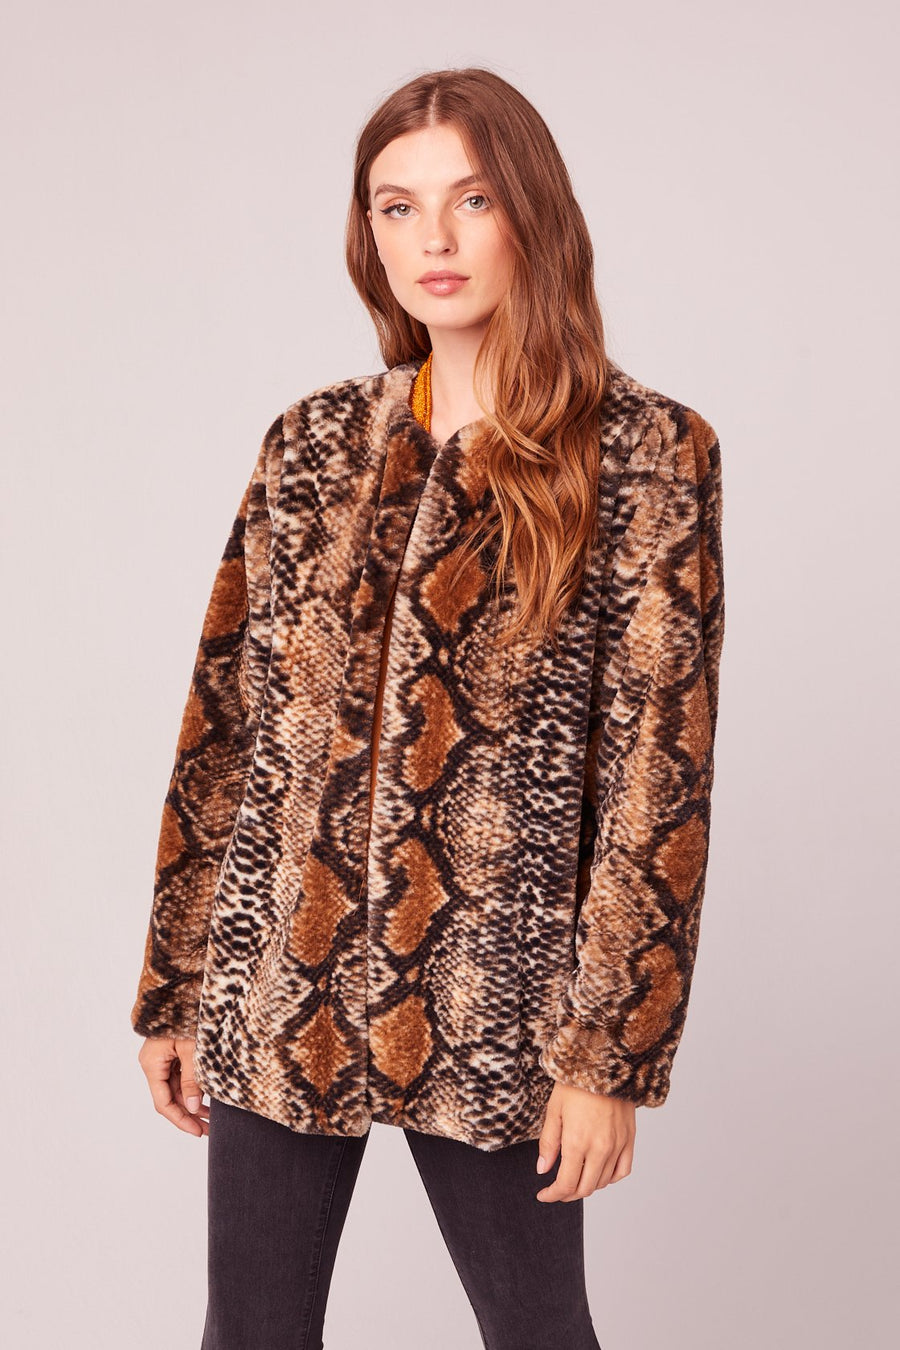 Serpent Faux Fur Snake Print Jacket